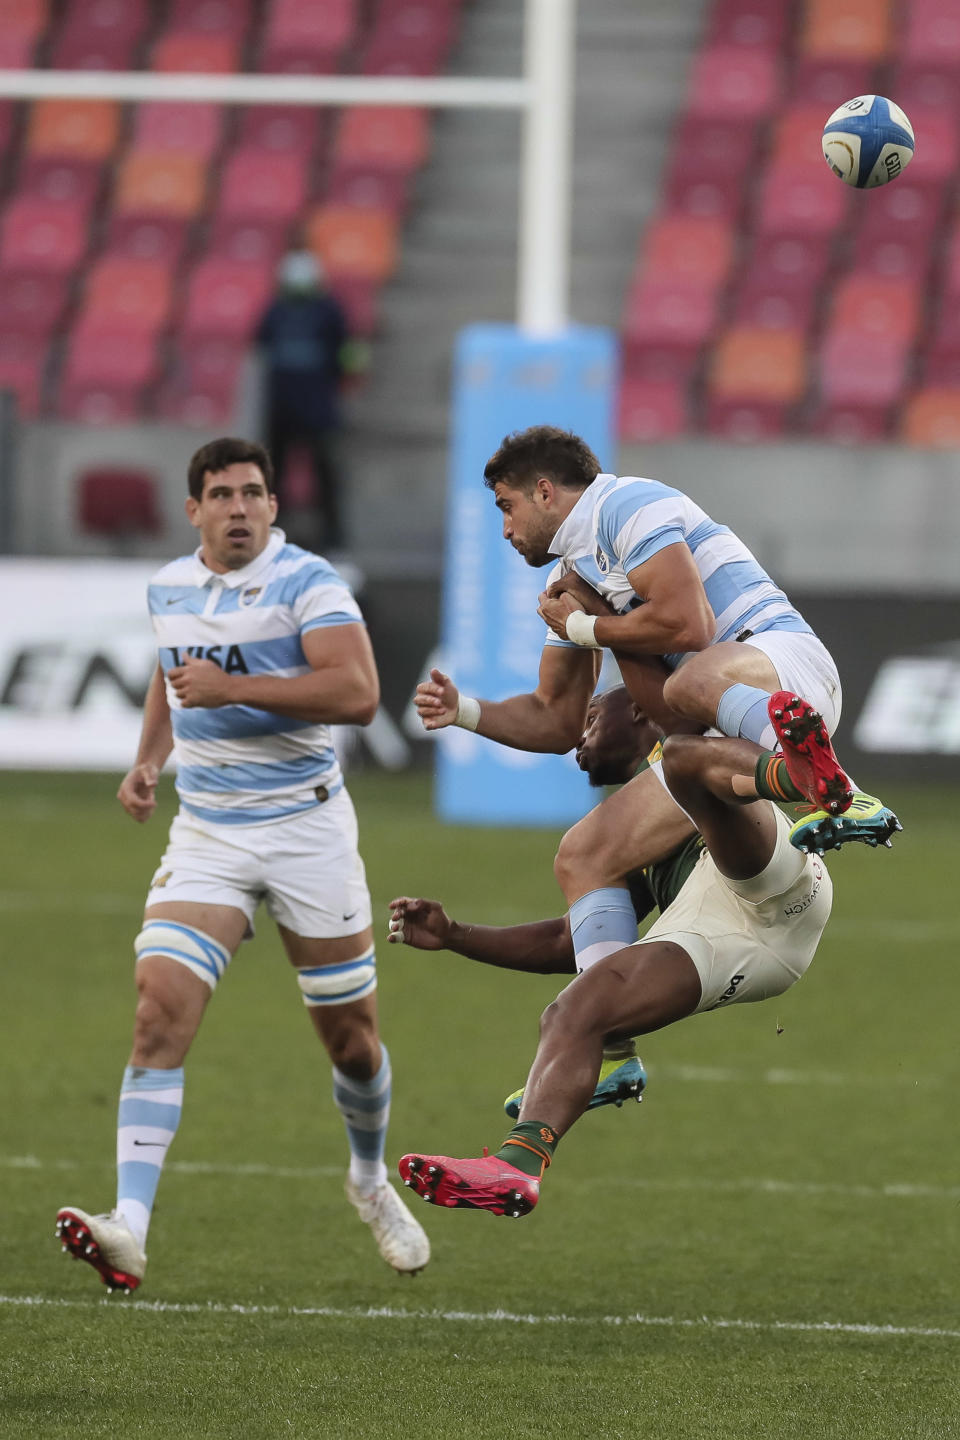 Lukhanyo Am of South Africa and Jeronimo de la Fuente of Argentina, right, collide for a high ball during the second Rugby Championship match between Argentina and South Africa at the Nelson Mandela Bay Stadium, Gqebeha, South Africa, Saturday, Aug. 21, 2021. (AP Photo/Halden Krog